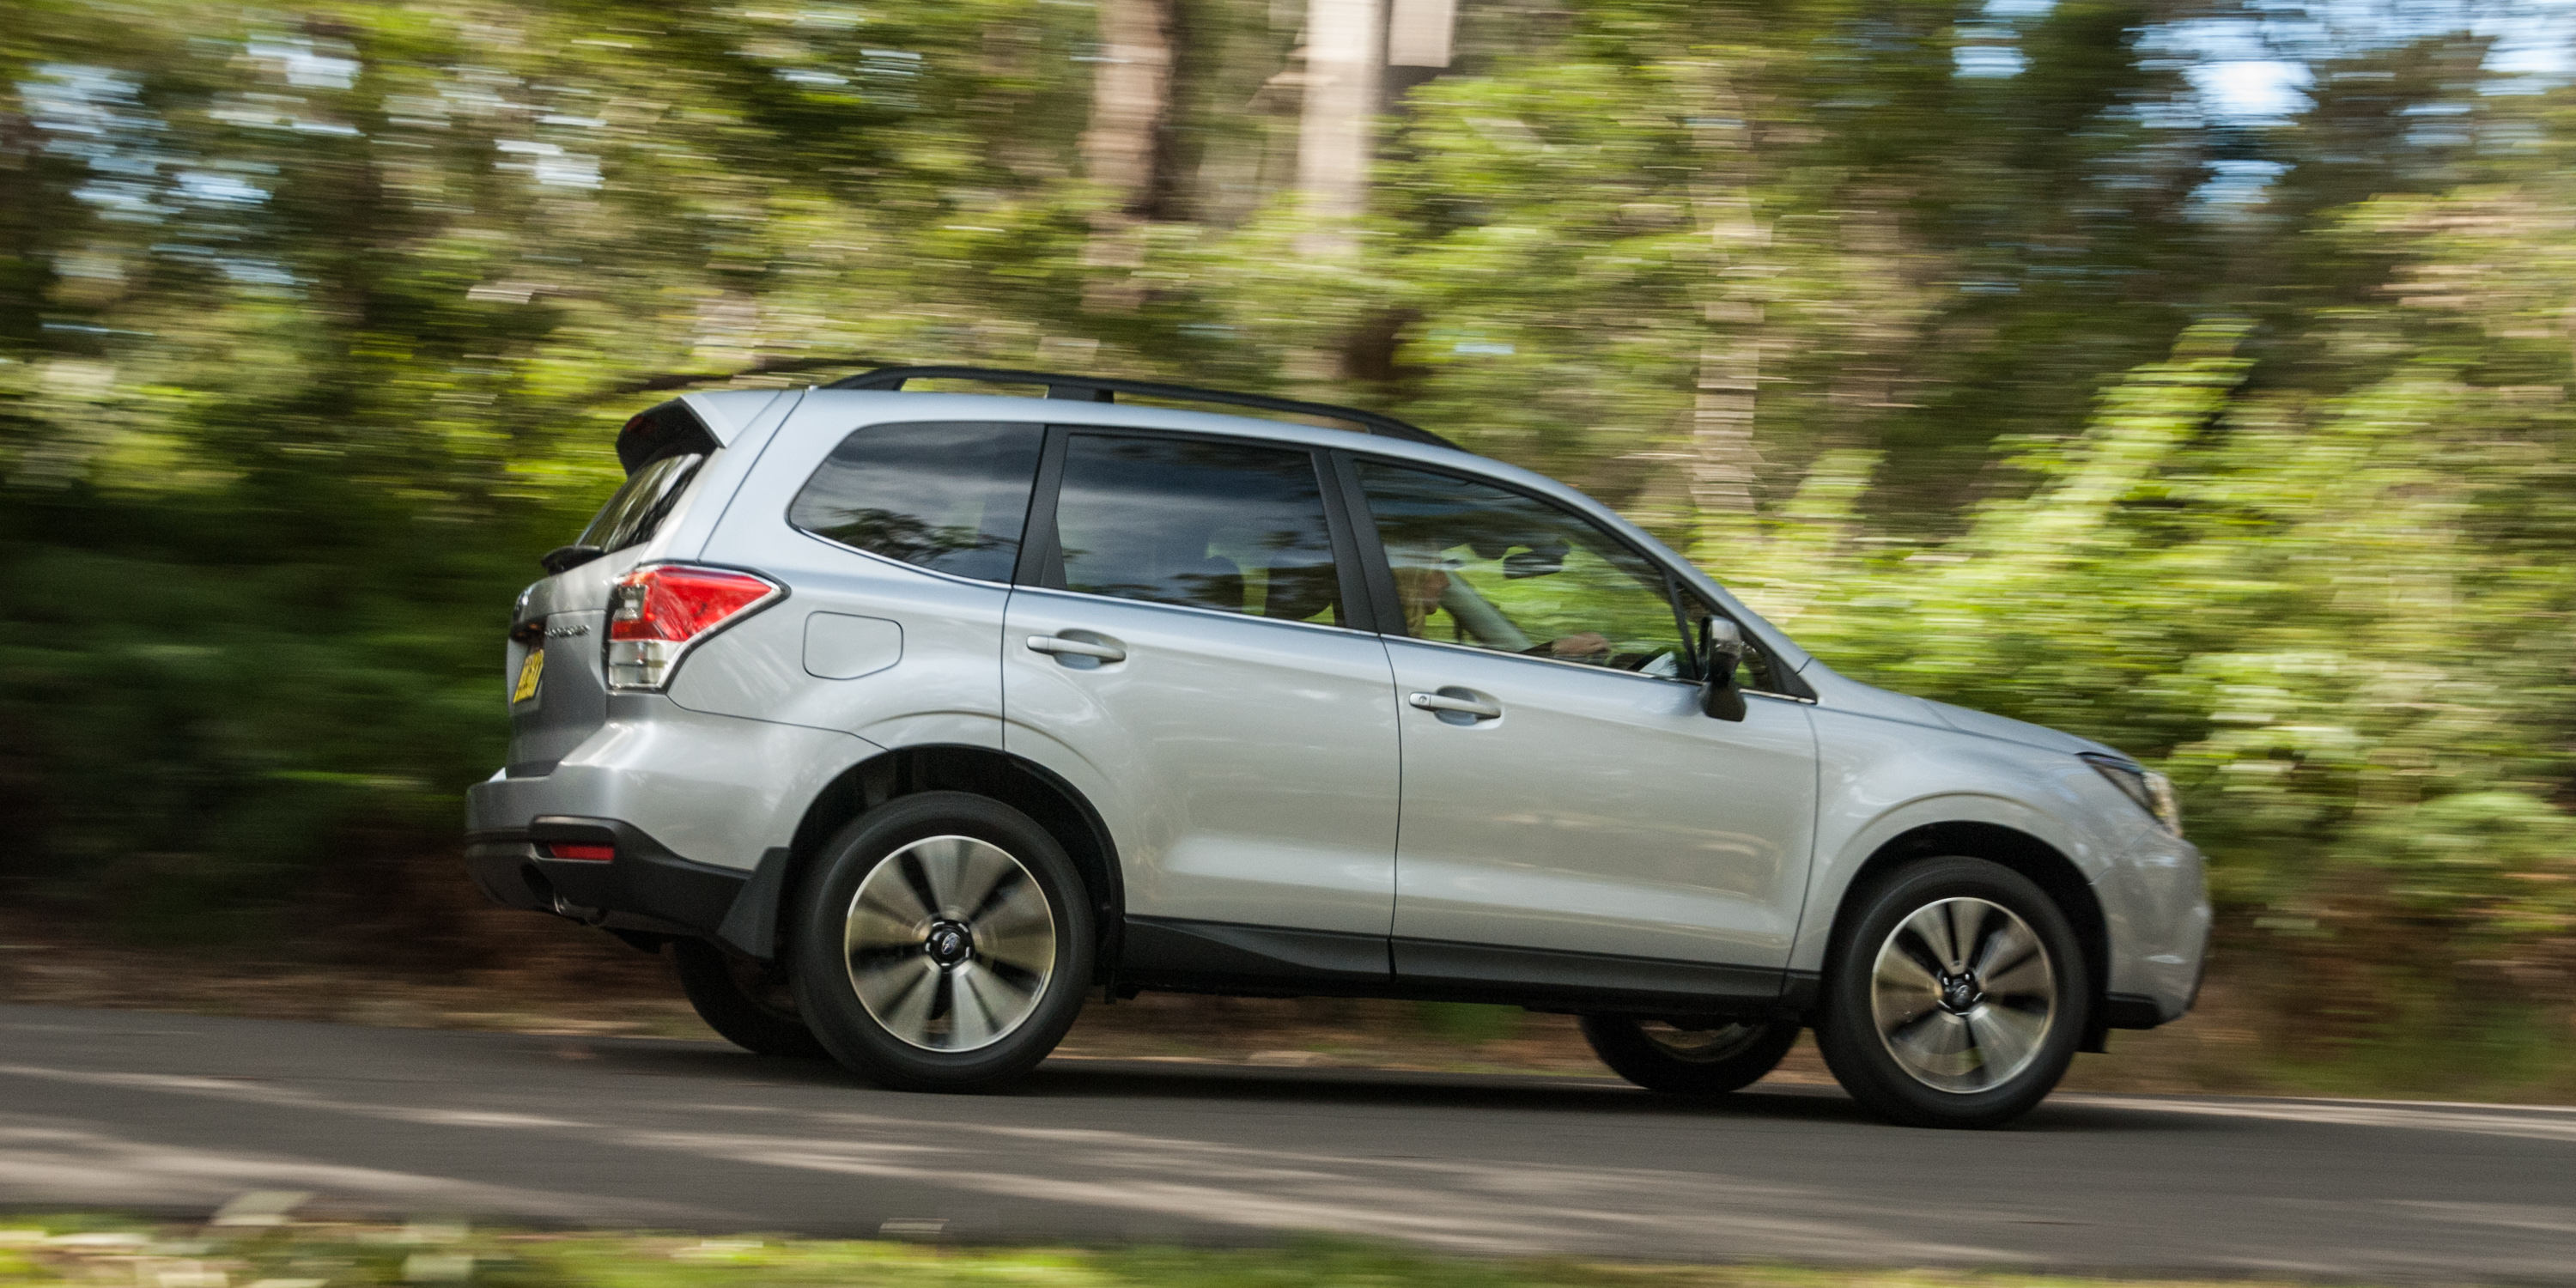 2017 Subaru Forester Limited Price >> 2016 Subaru Forester 2.5i-S Review | CarAdvice